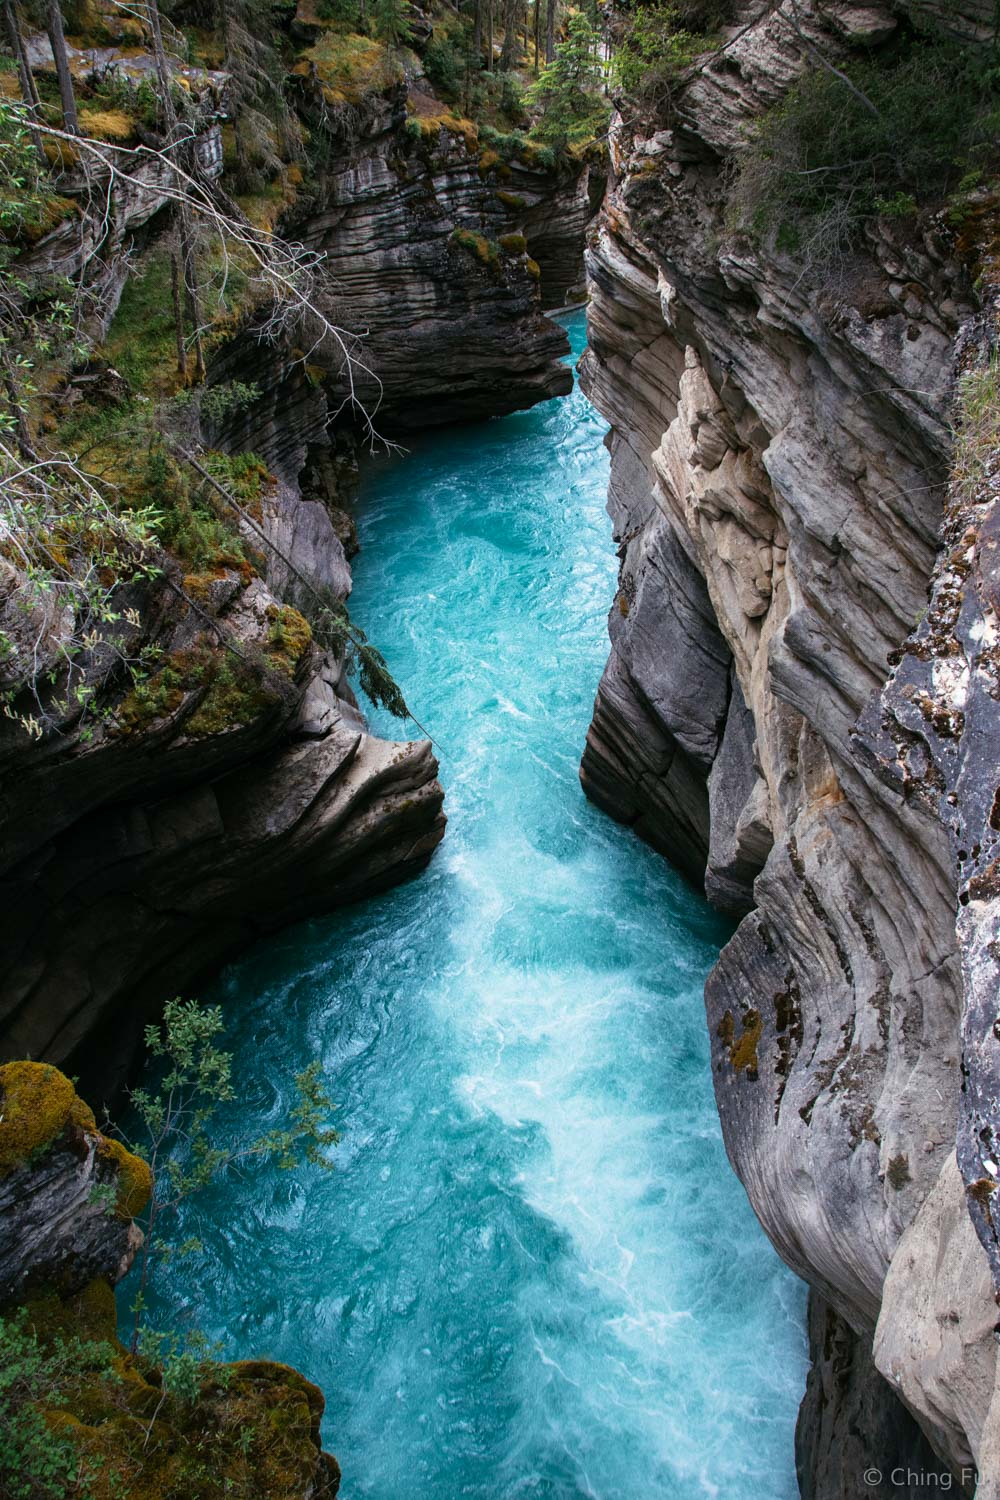 The section of Athabasca River after the waterfall.